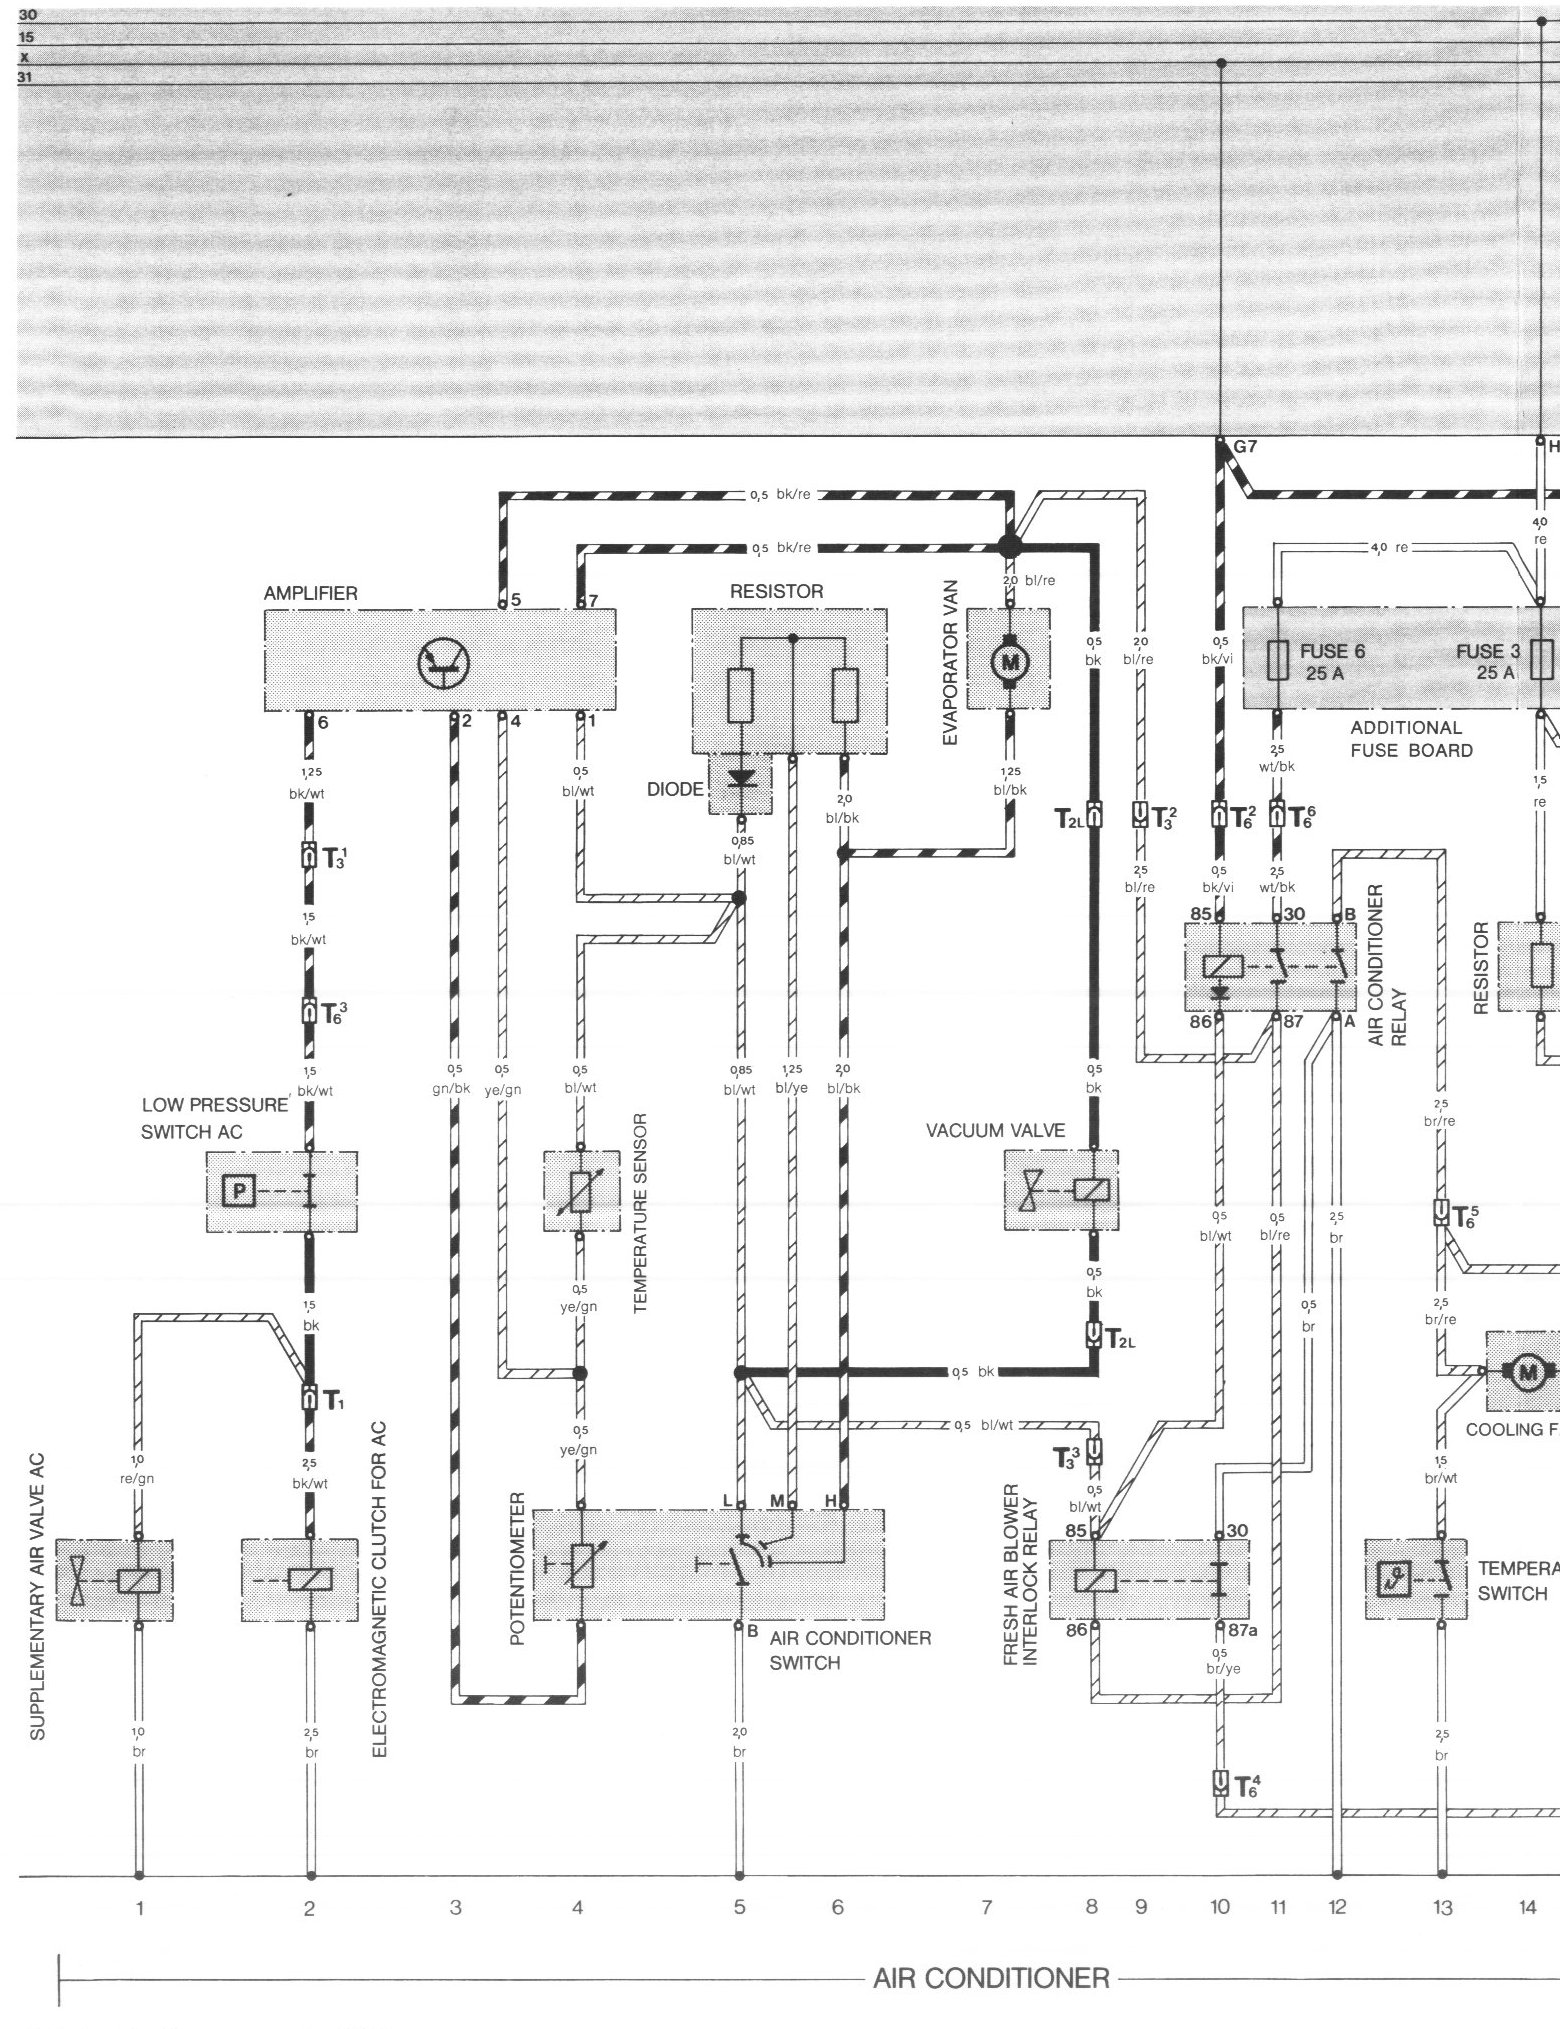 944_84_AC_1 pelican parts porsche 924 944 electrical diagrams 1983 porsche 944 fuse box diagram at eliteediting.co